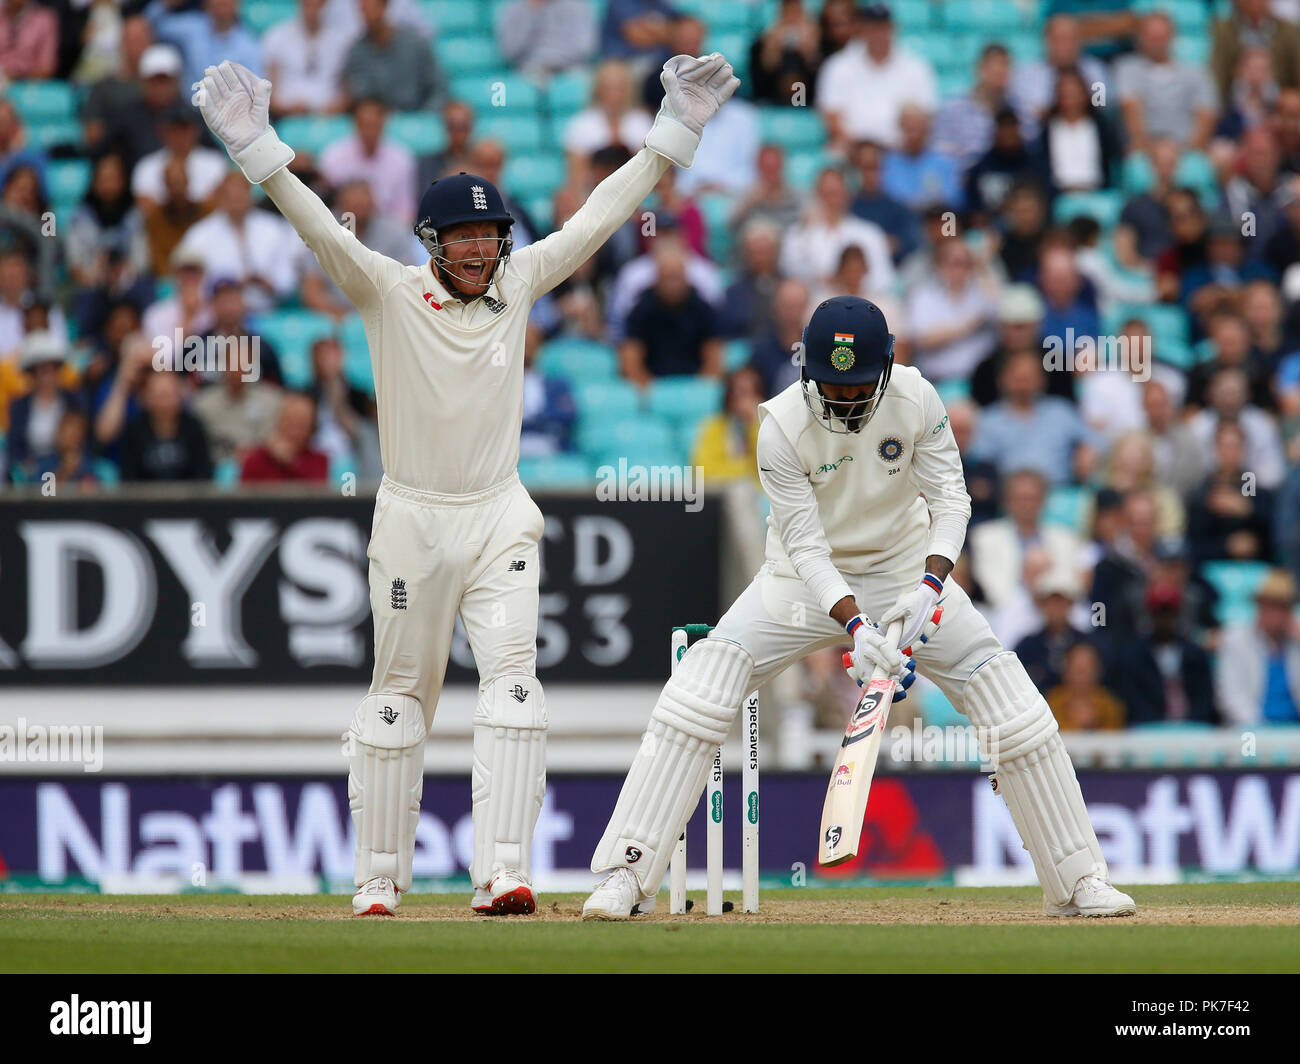 Kia Oval, London, UK. 11th Sep, 2018. Specsavers International Test Match Cricket, 5th test, day 5; England keeper Jonny Bairstow appeals for lbw against KL Rahul of India Credit: Action Plus Sports/Alamy Live News - Stock Image